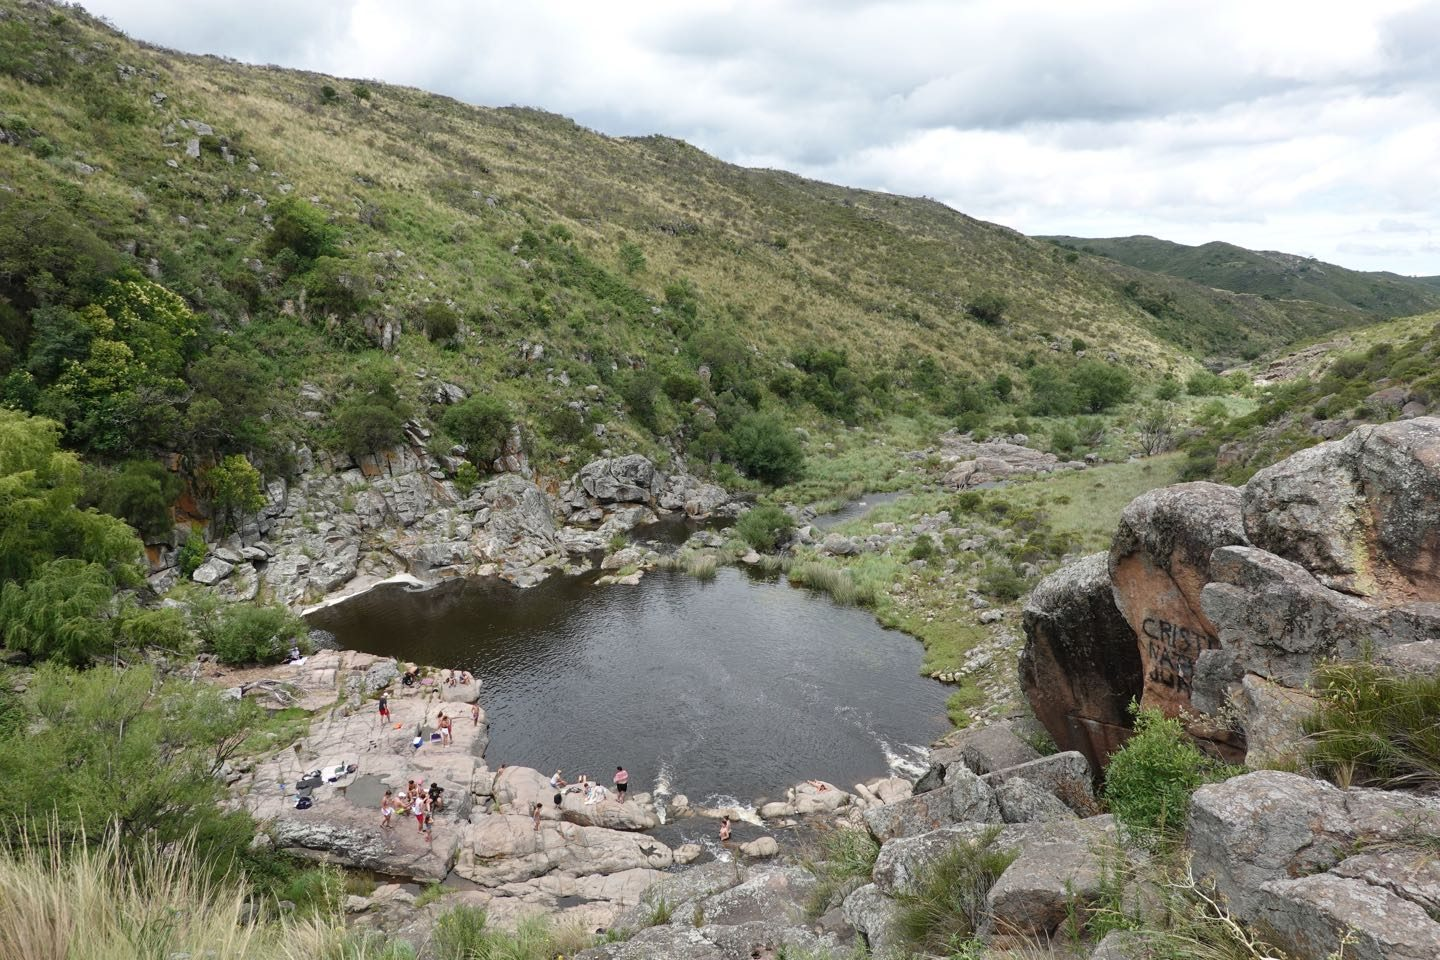 Panoramic view from the natural pool on the Cascada de Olaen.